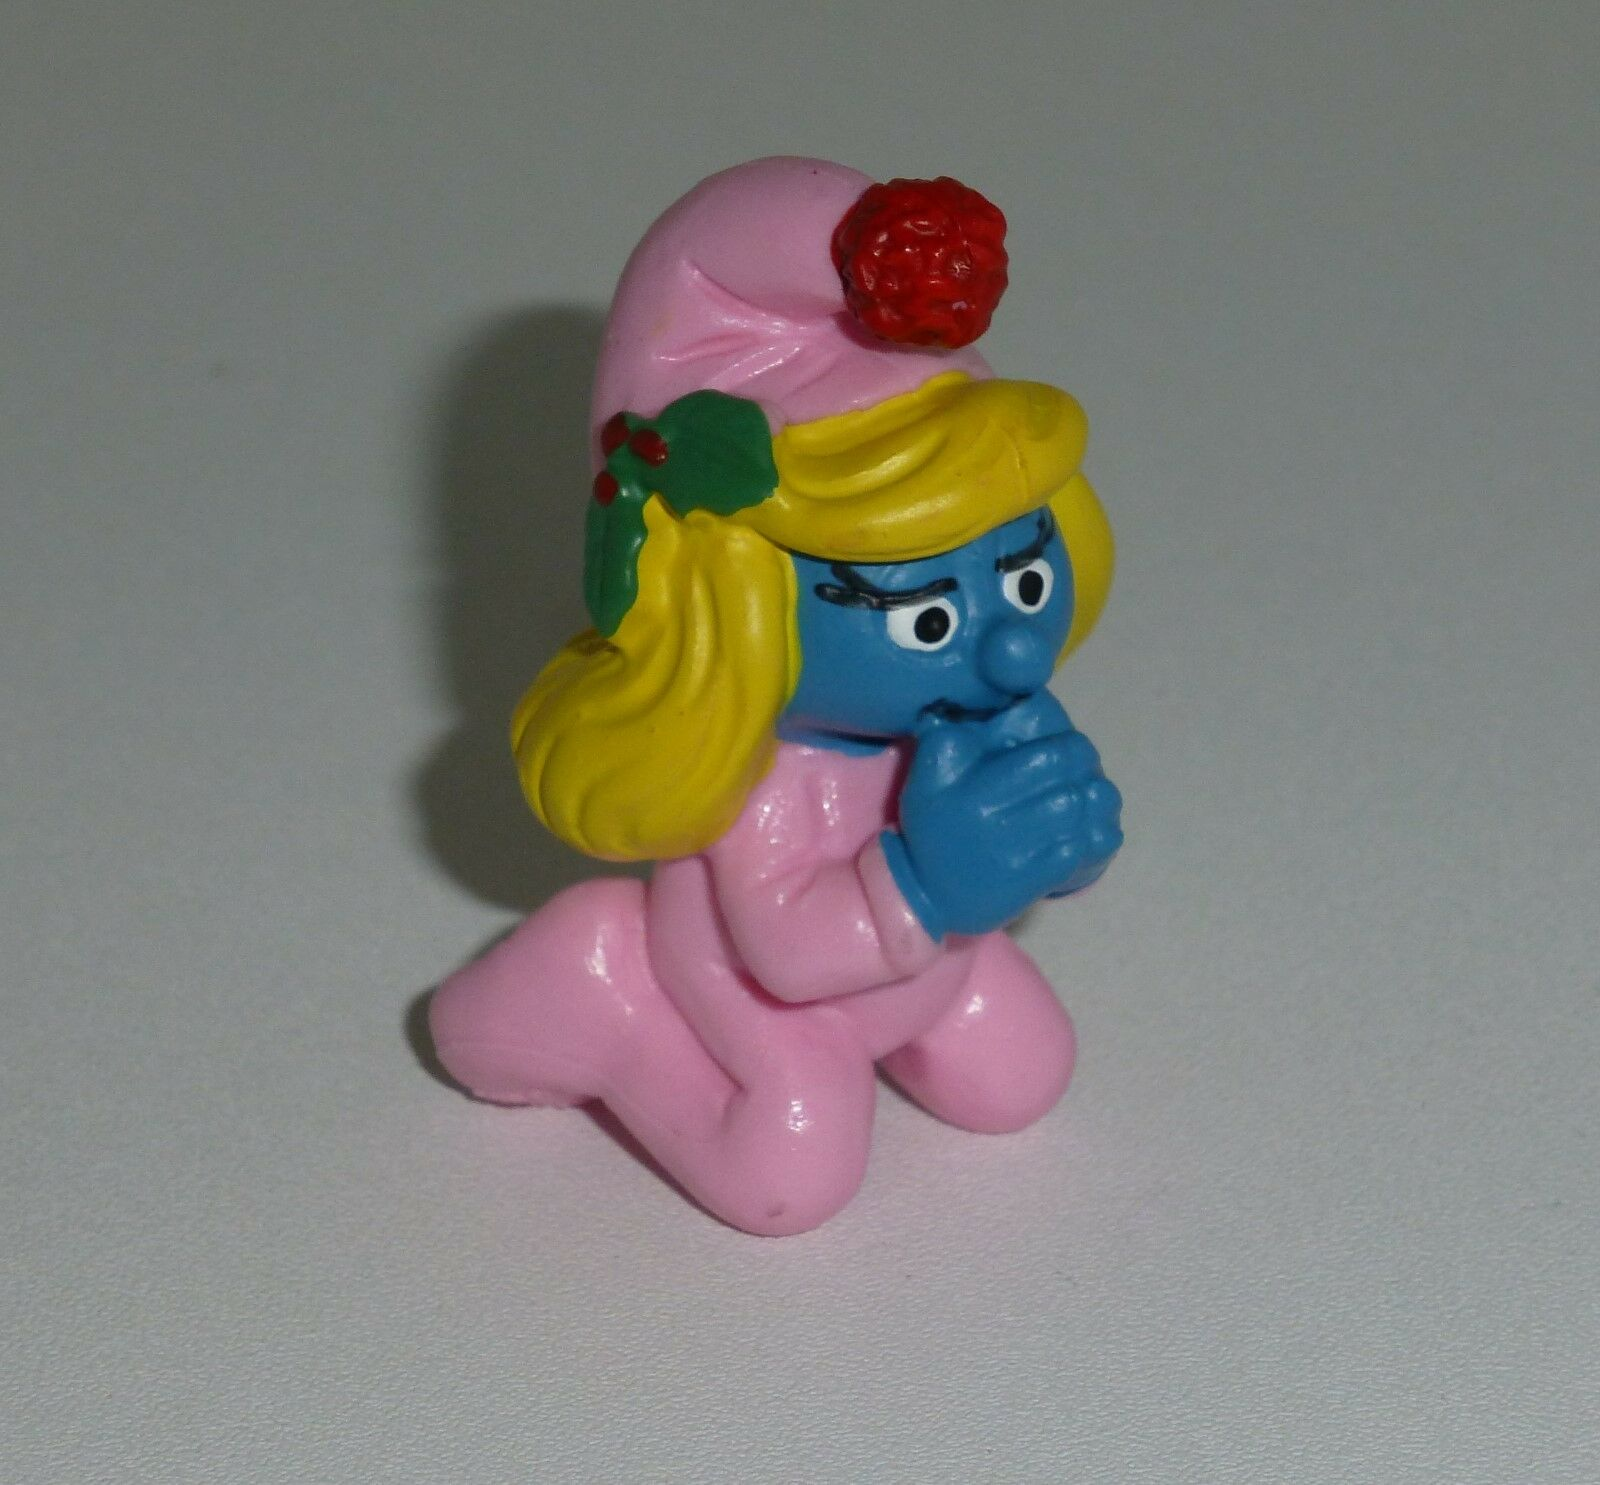 Smurf schleich  51911 prieuse-tbe-made in portugal (smurf puffi  pitufo)  le moins cher